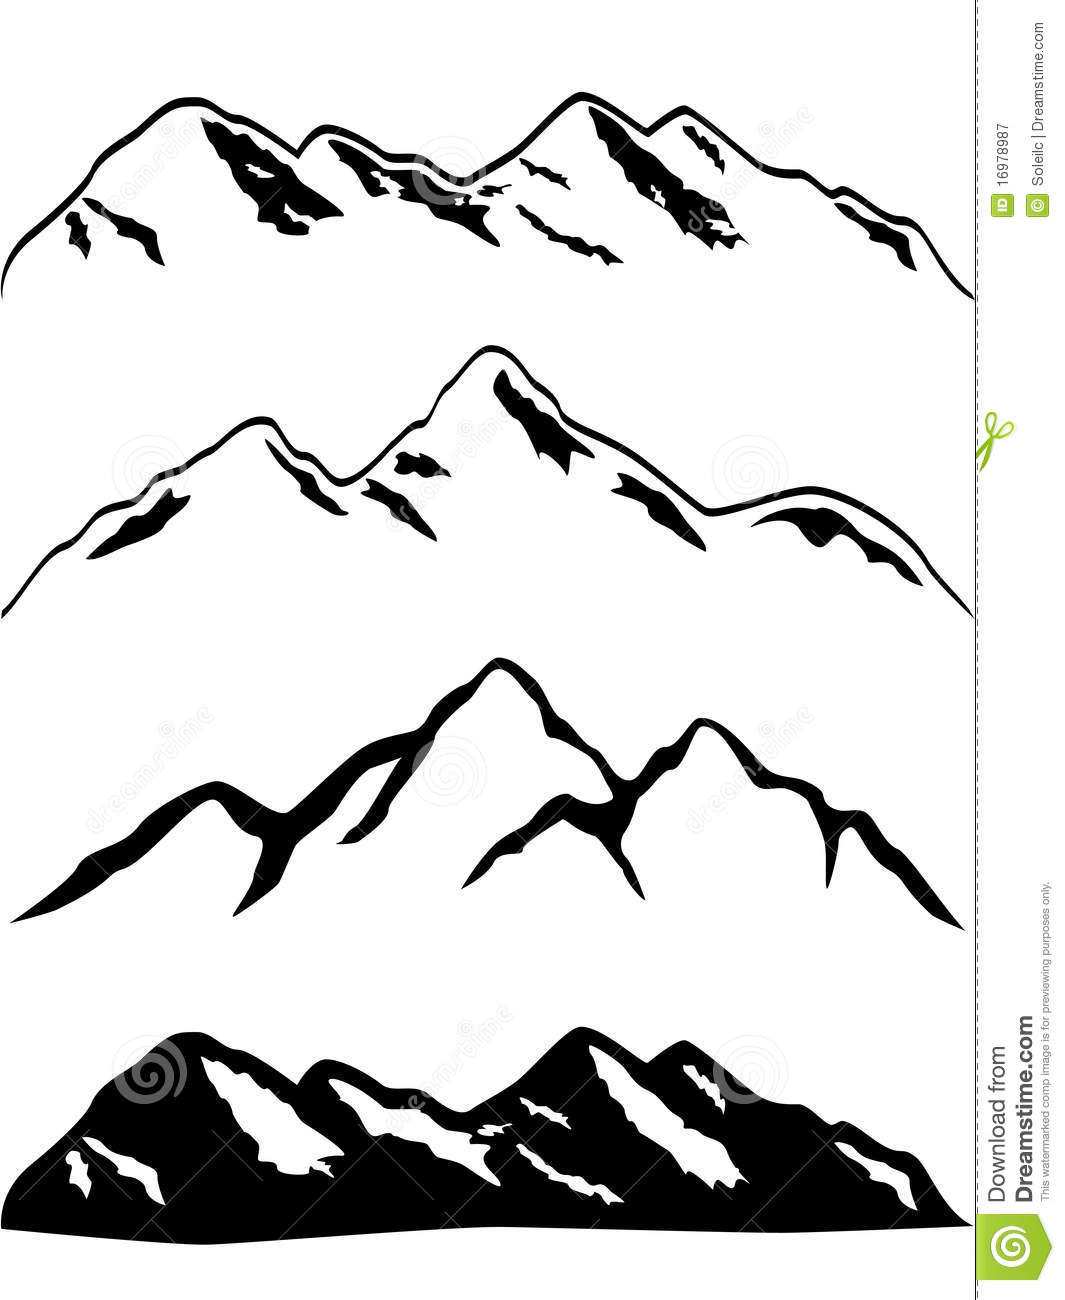 Snowy Mountain Peaks Royalty Free Stock Photography   Image  16978987